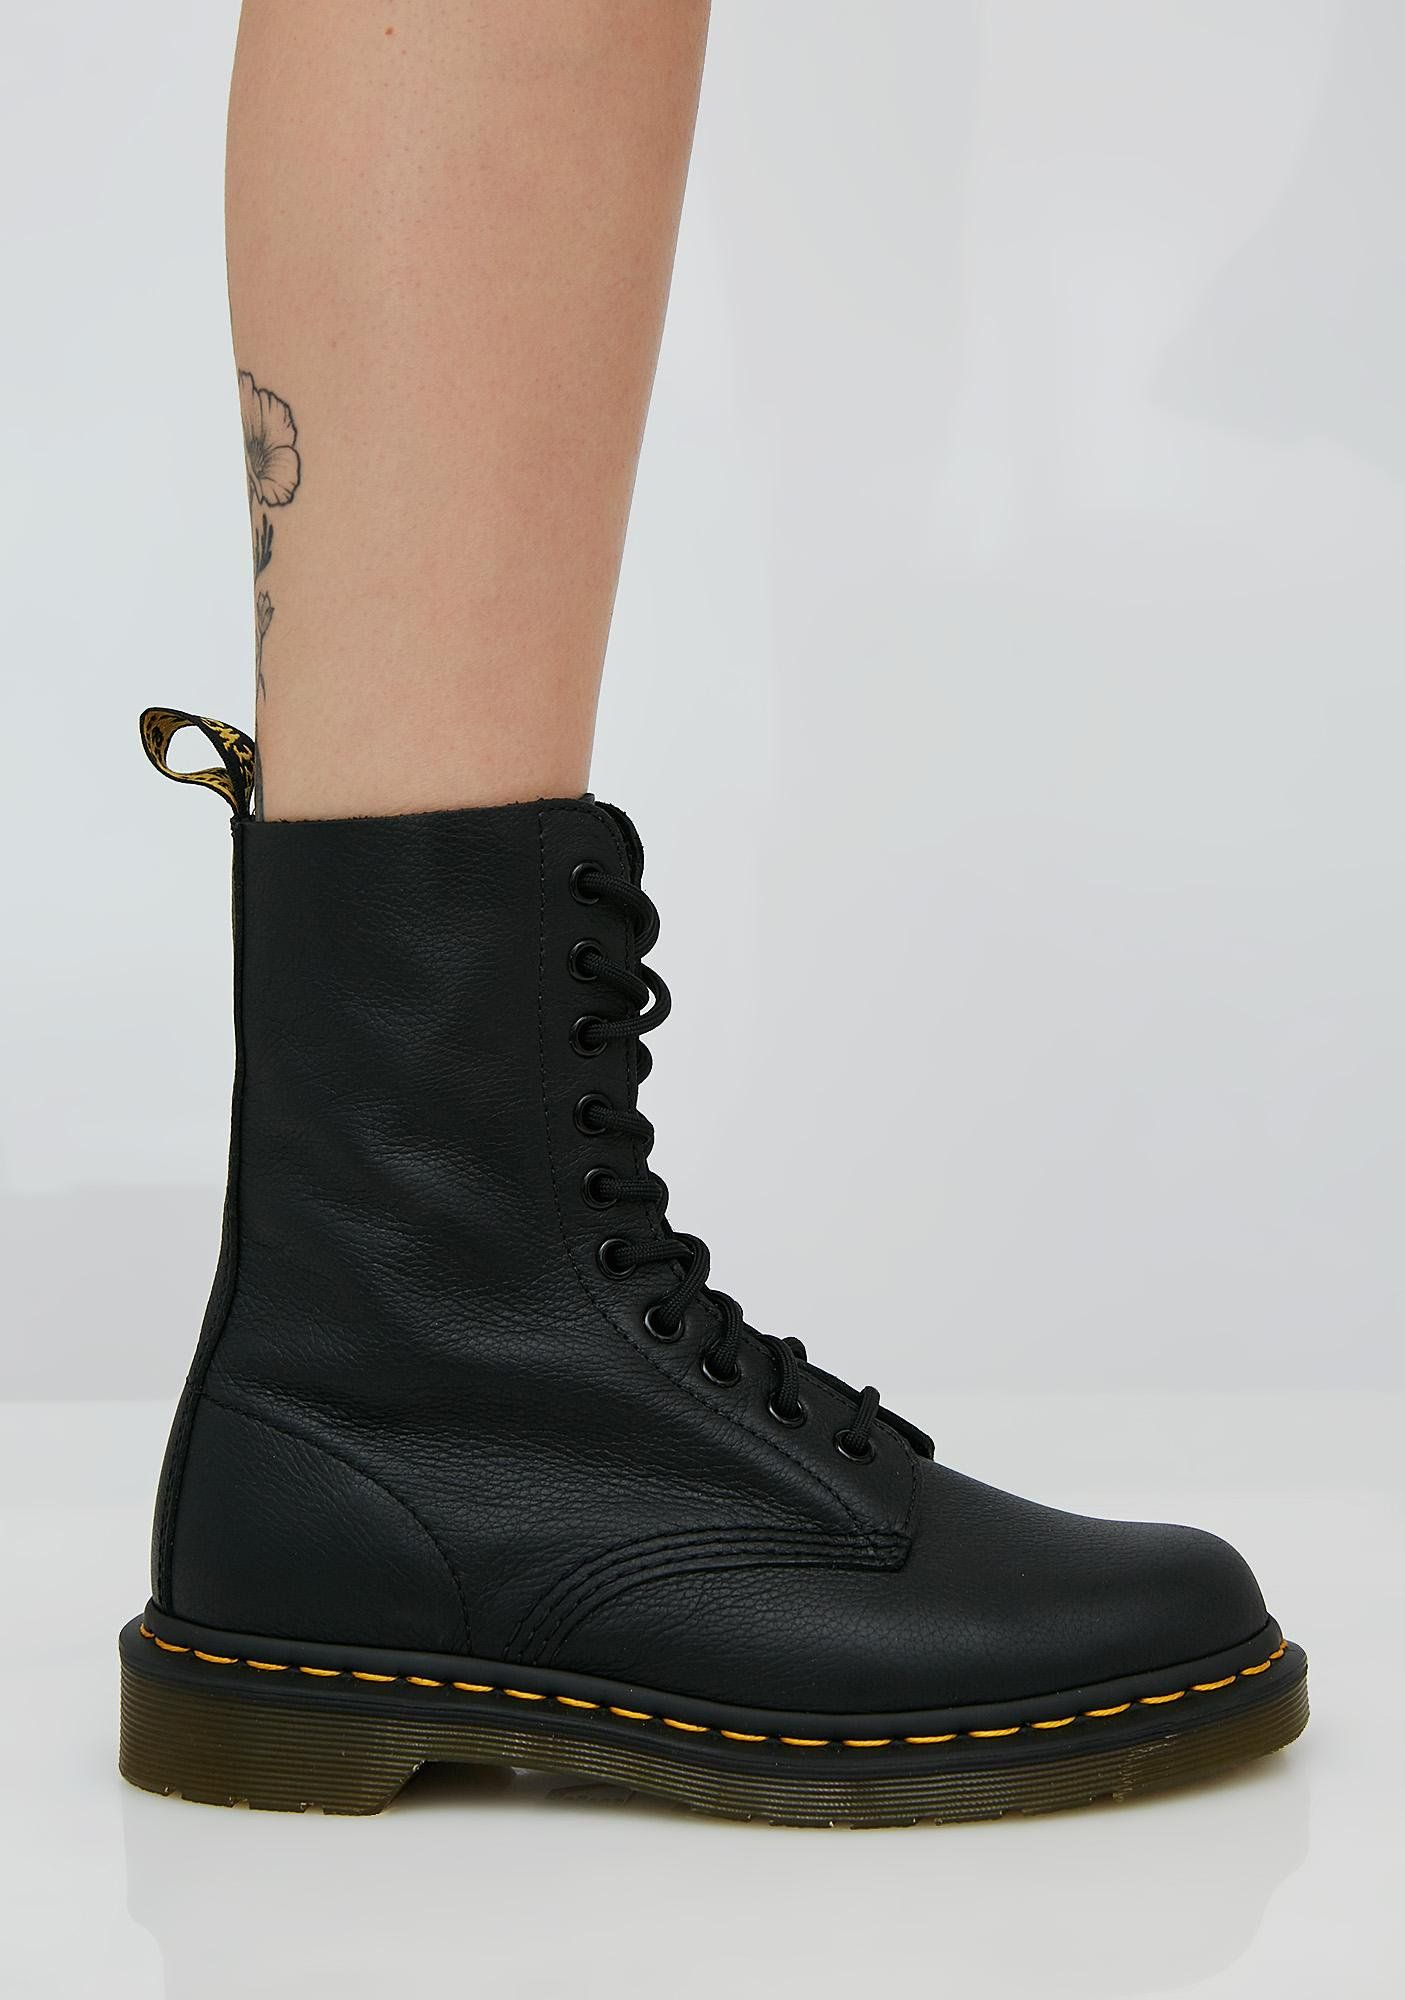 Stomp all around with these sikk combat boots with round toes a563d93e6ade